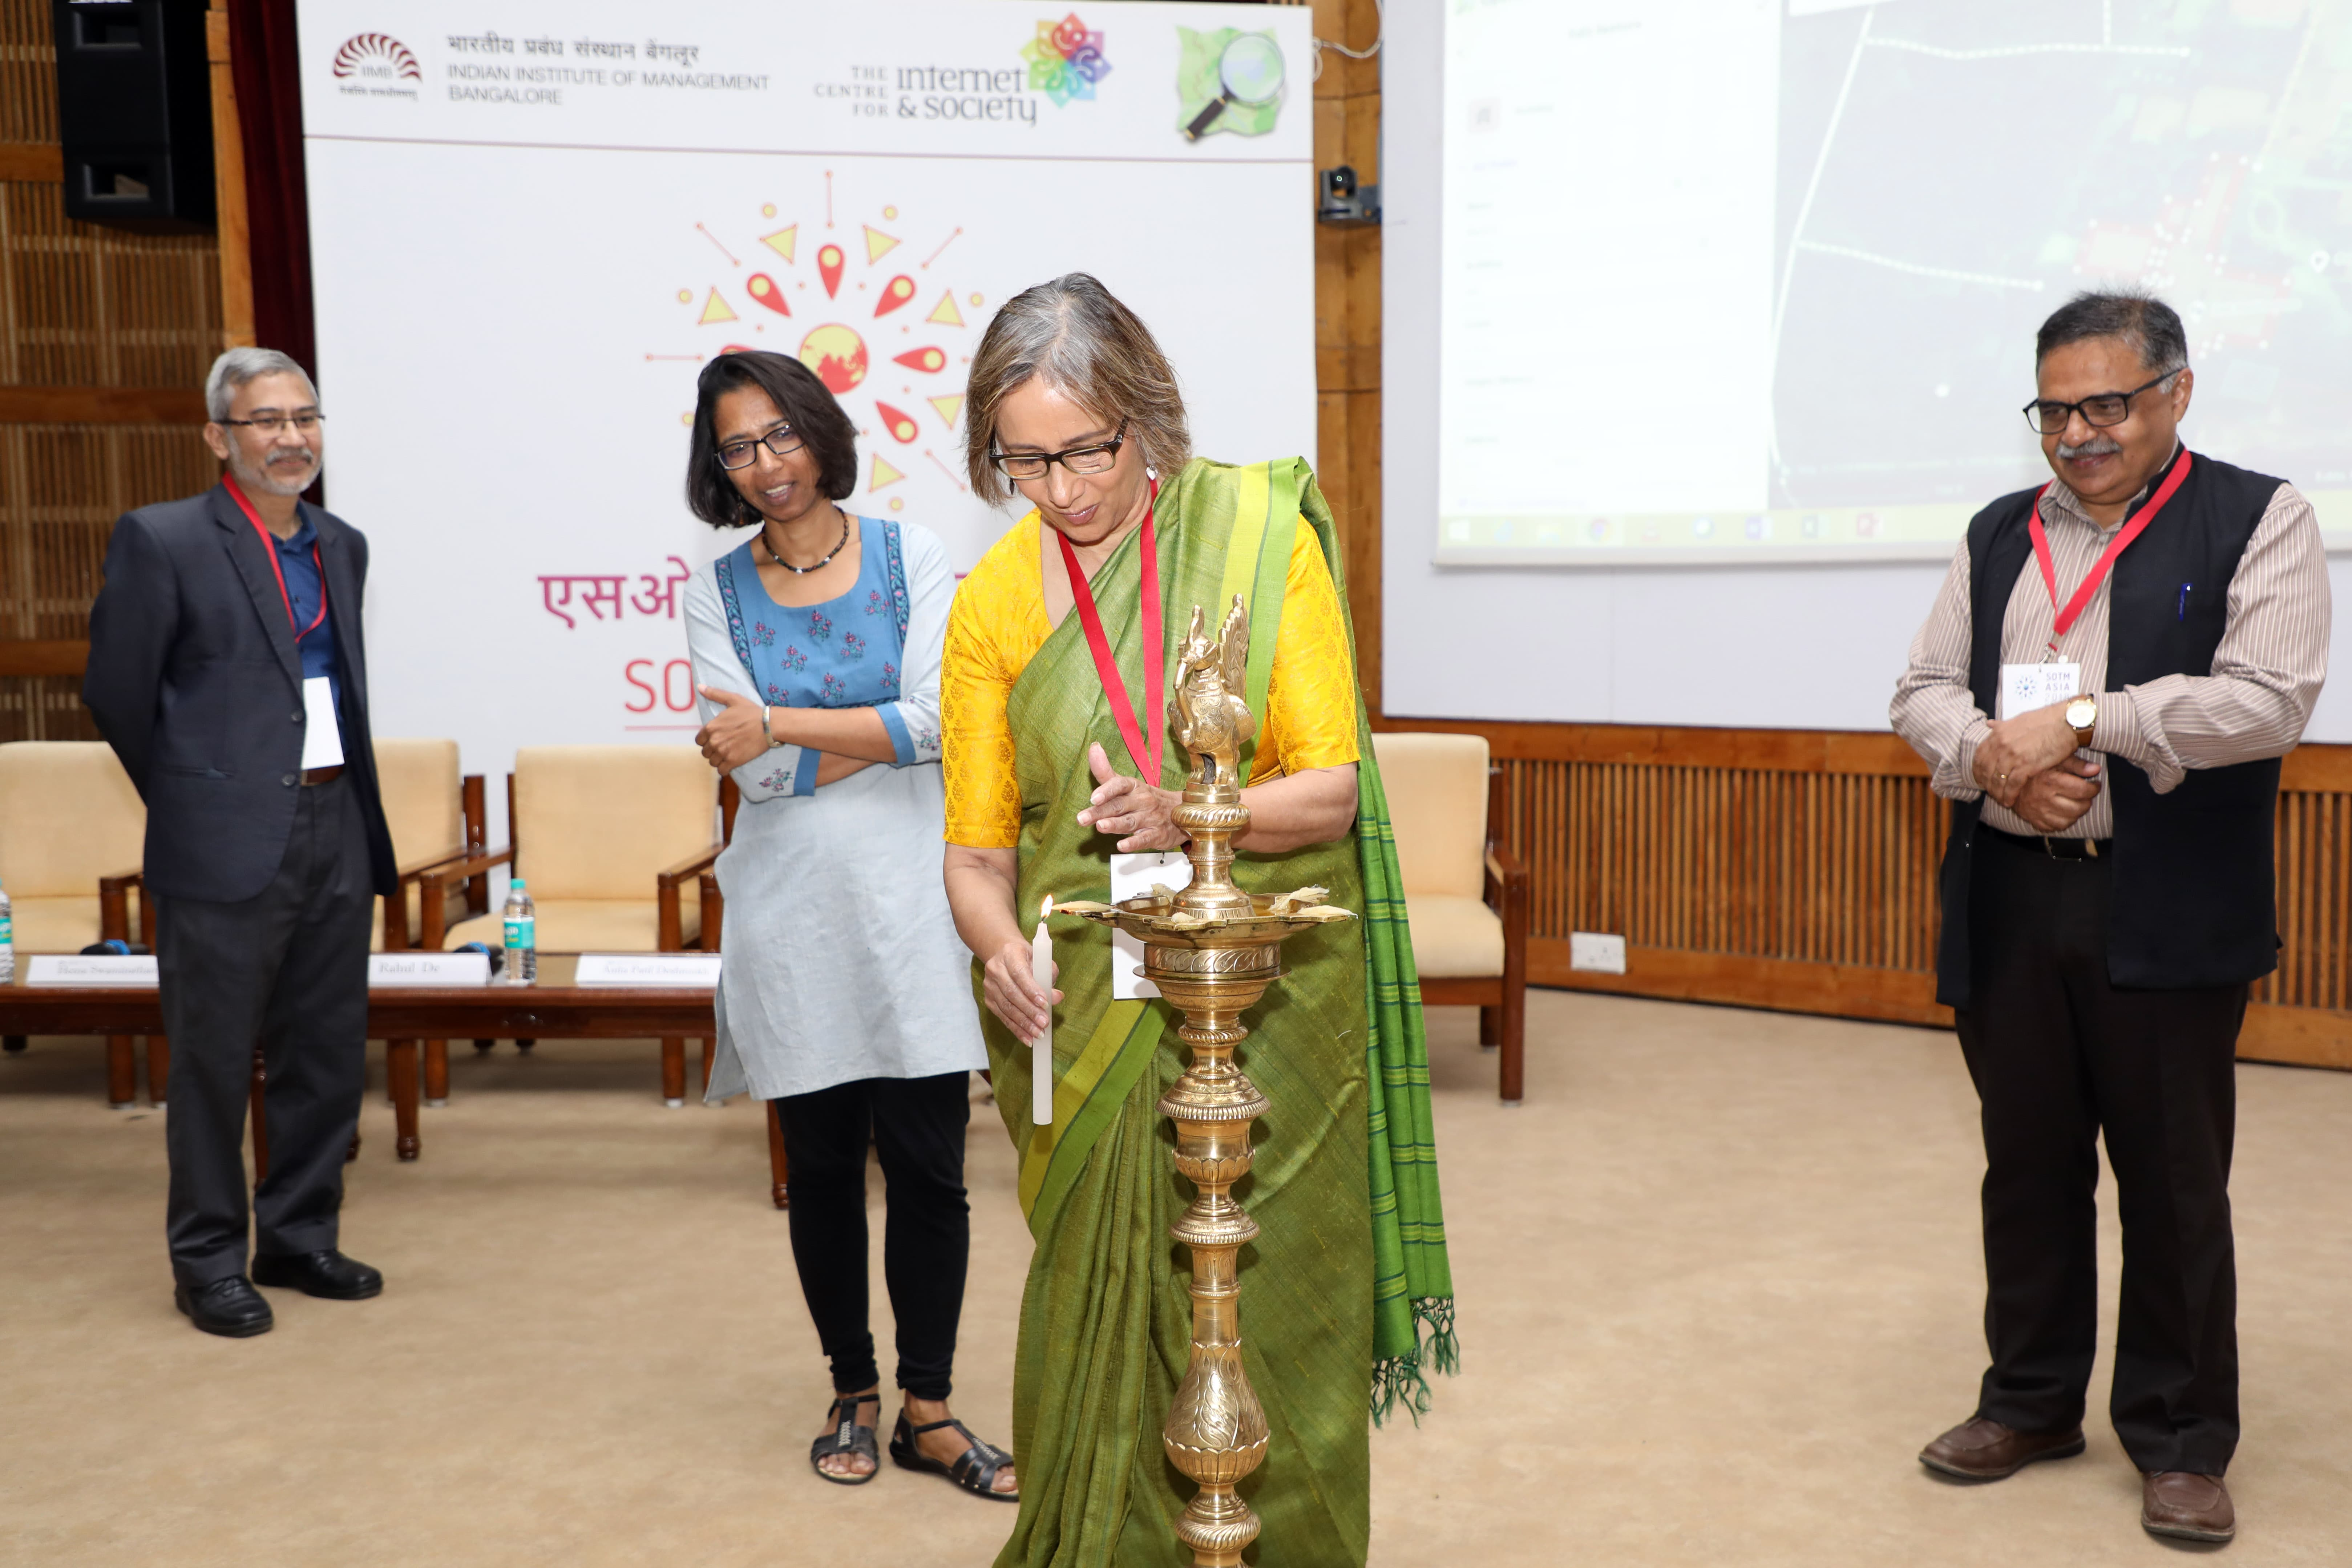 IIM Bangalore, OpenStreetMap India, and Centre for Internet and Society host 'State of the Map Asia 2018' Conference